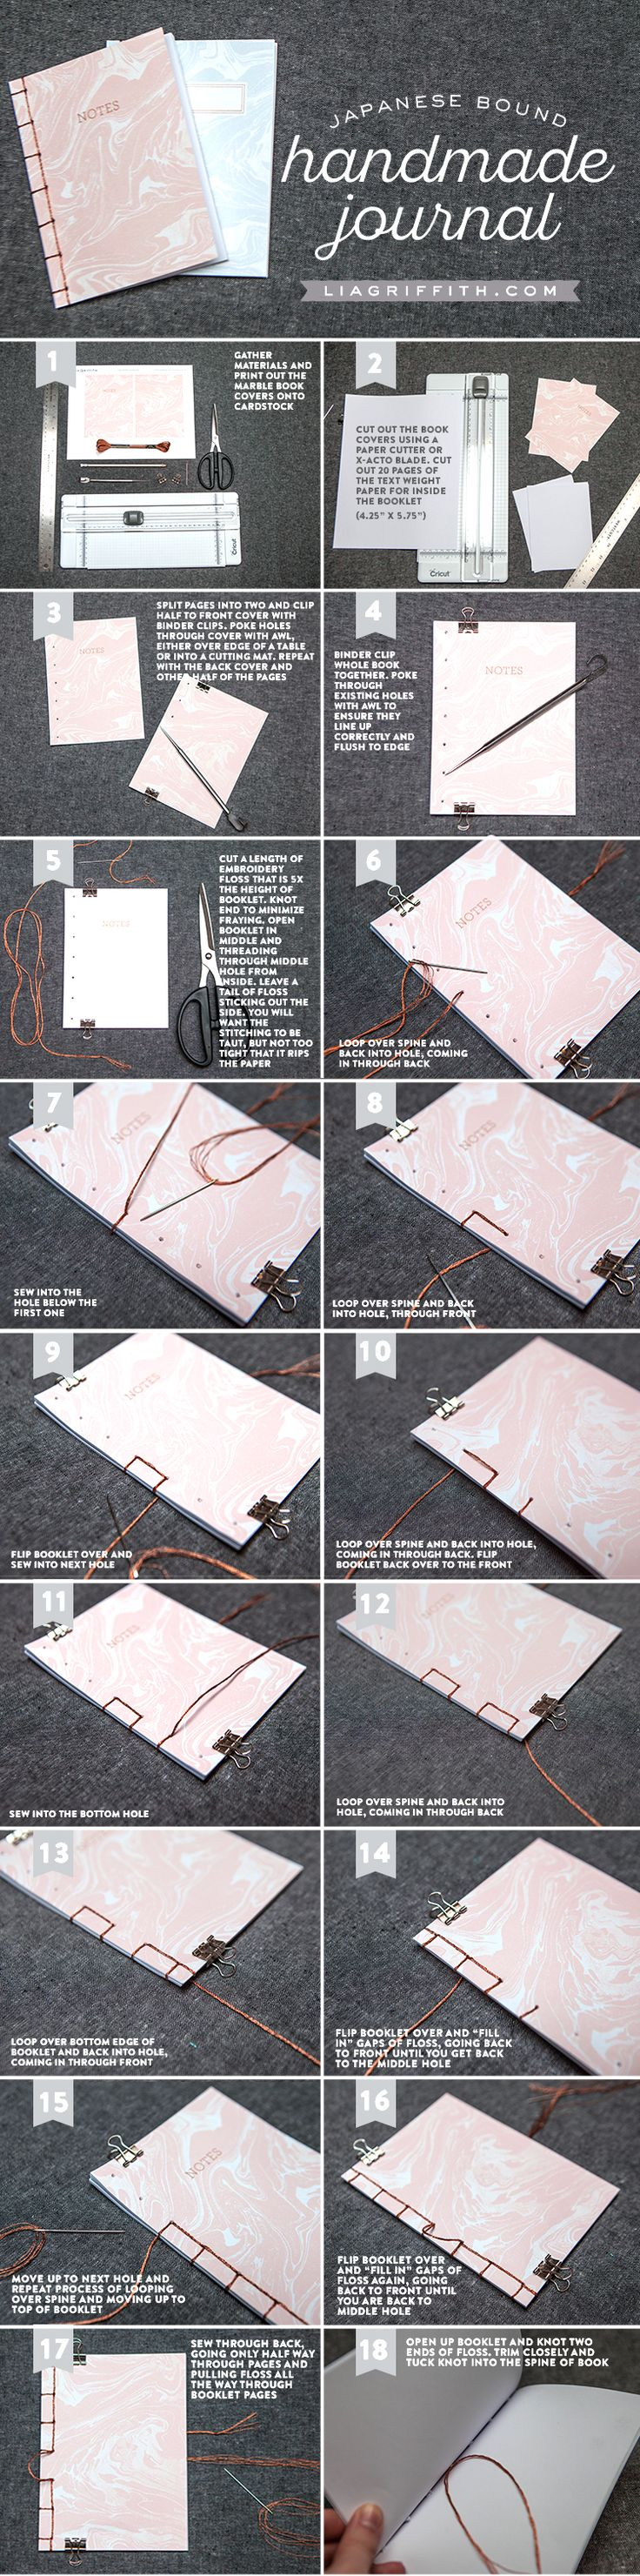 Follow our easy step-by-step tutorial to bind a handmade journal. Download our pretty marbled covers and pop a journal into your purse for easy note-taking!